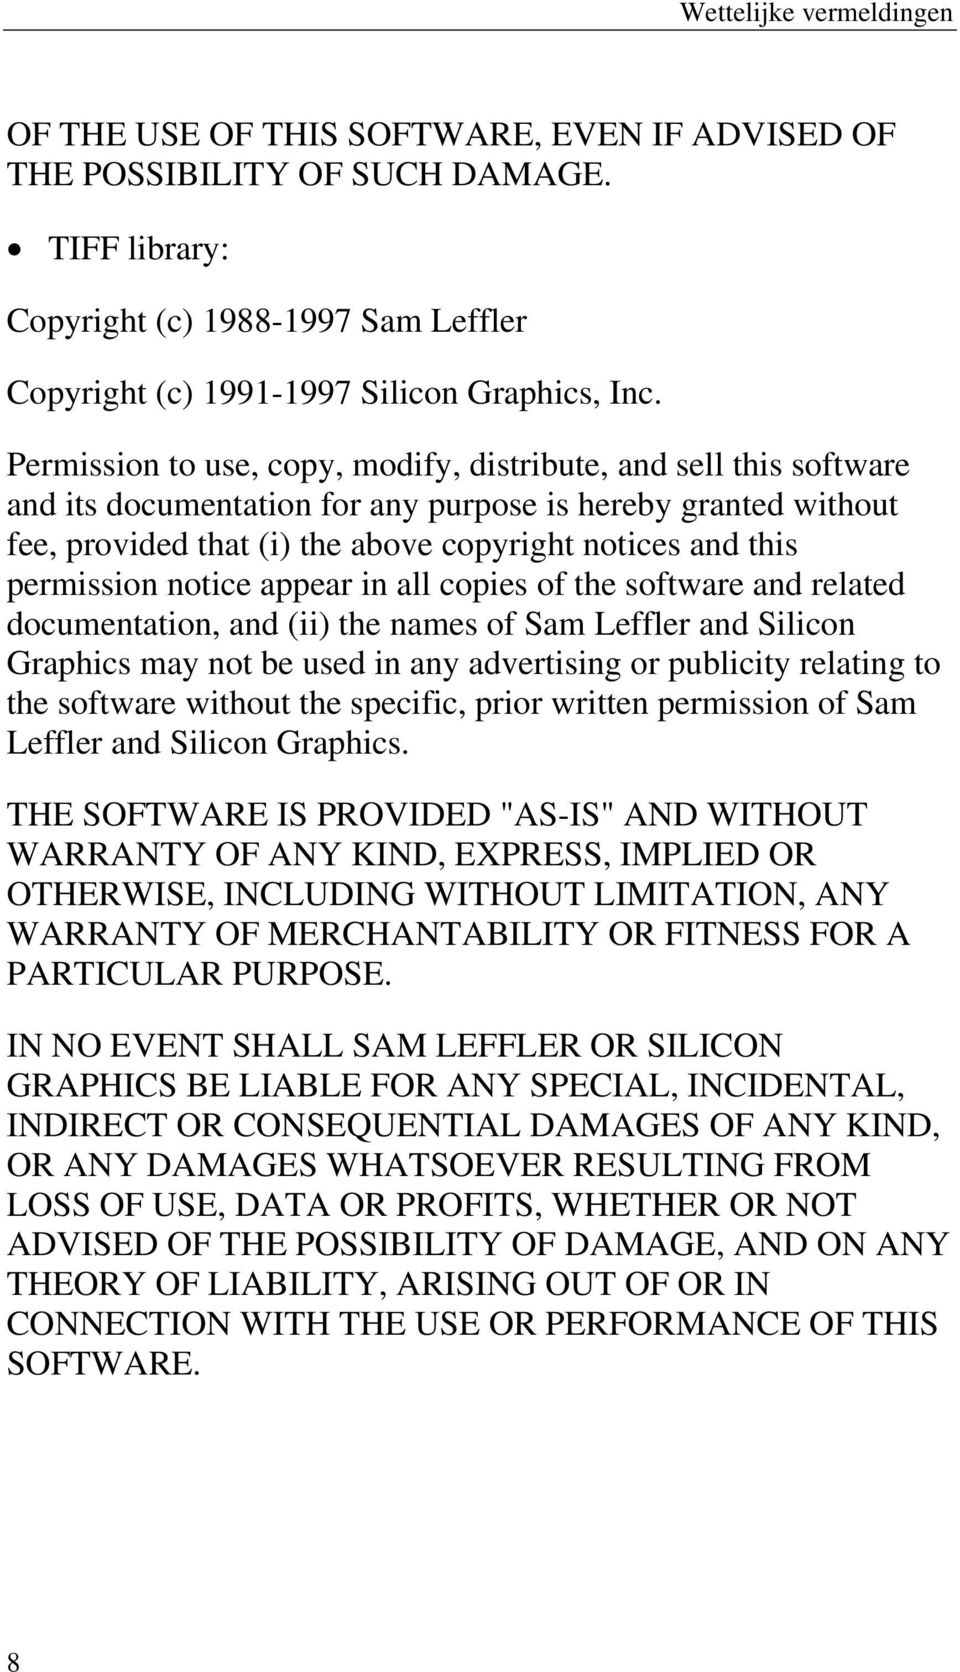 permission notice appear in all copies of the software and related documentation, and (ii) the names of Sam Leffler and Silicon Graphics may not be used in any advertising or publicity relating to